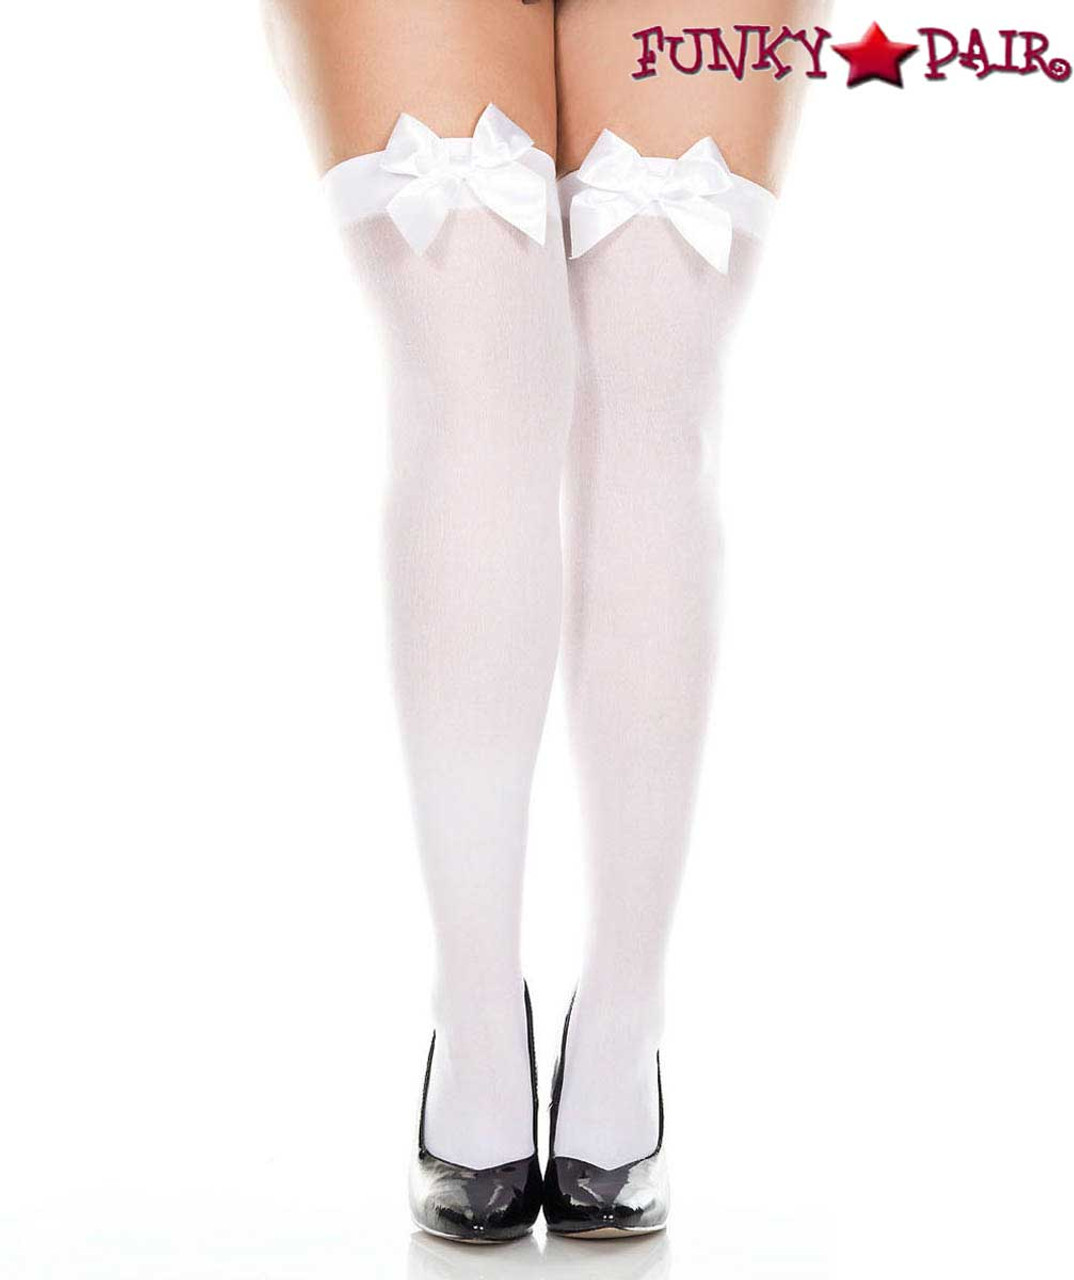 Ladies Knee High Socks with Matching Silky Ribbon Bows size UK 6-9